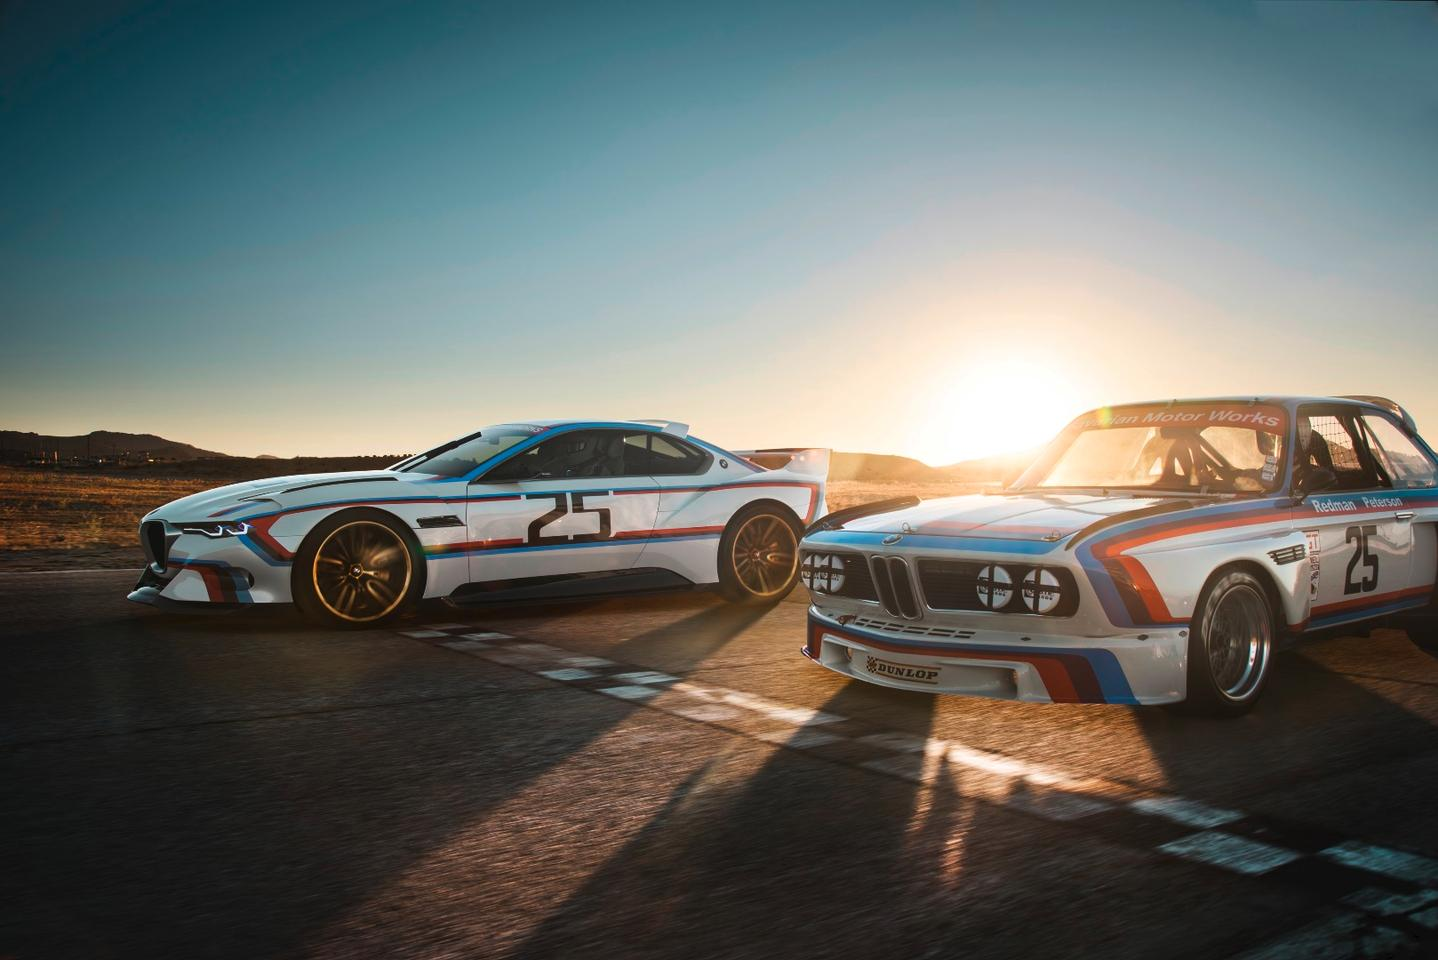 The 3.0 CSL Hommage R has been designed to celebrate 40 years of BMW in the USA